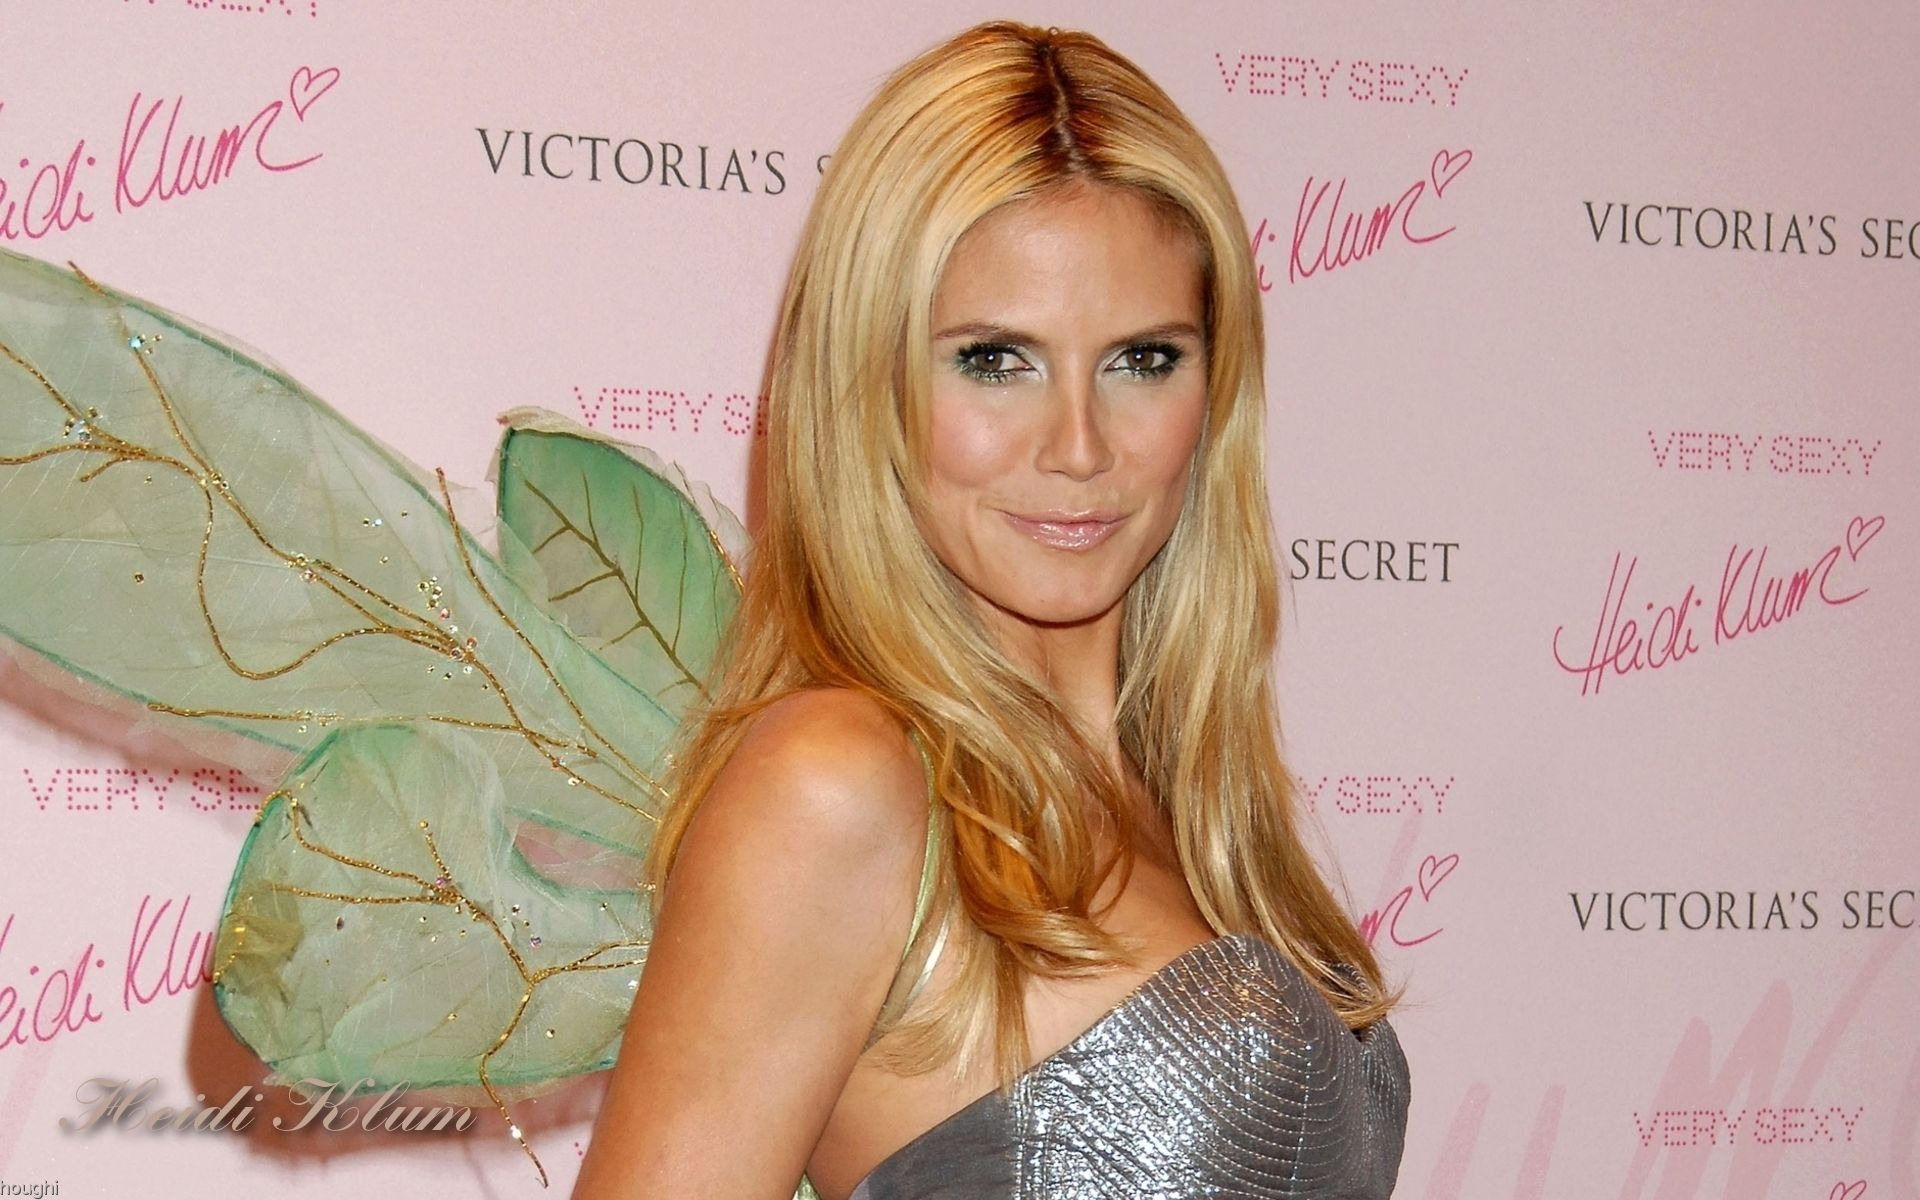 Heidi Klum #047 - 1920x1200 Wallpapers Pictures Photos Images